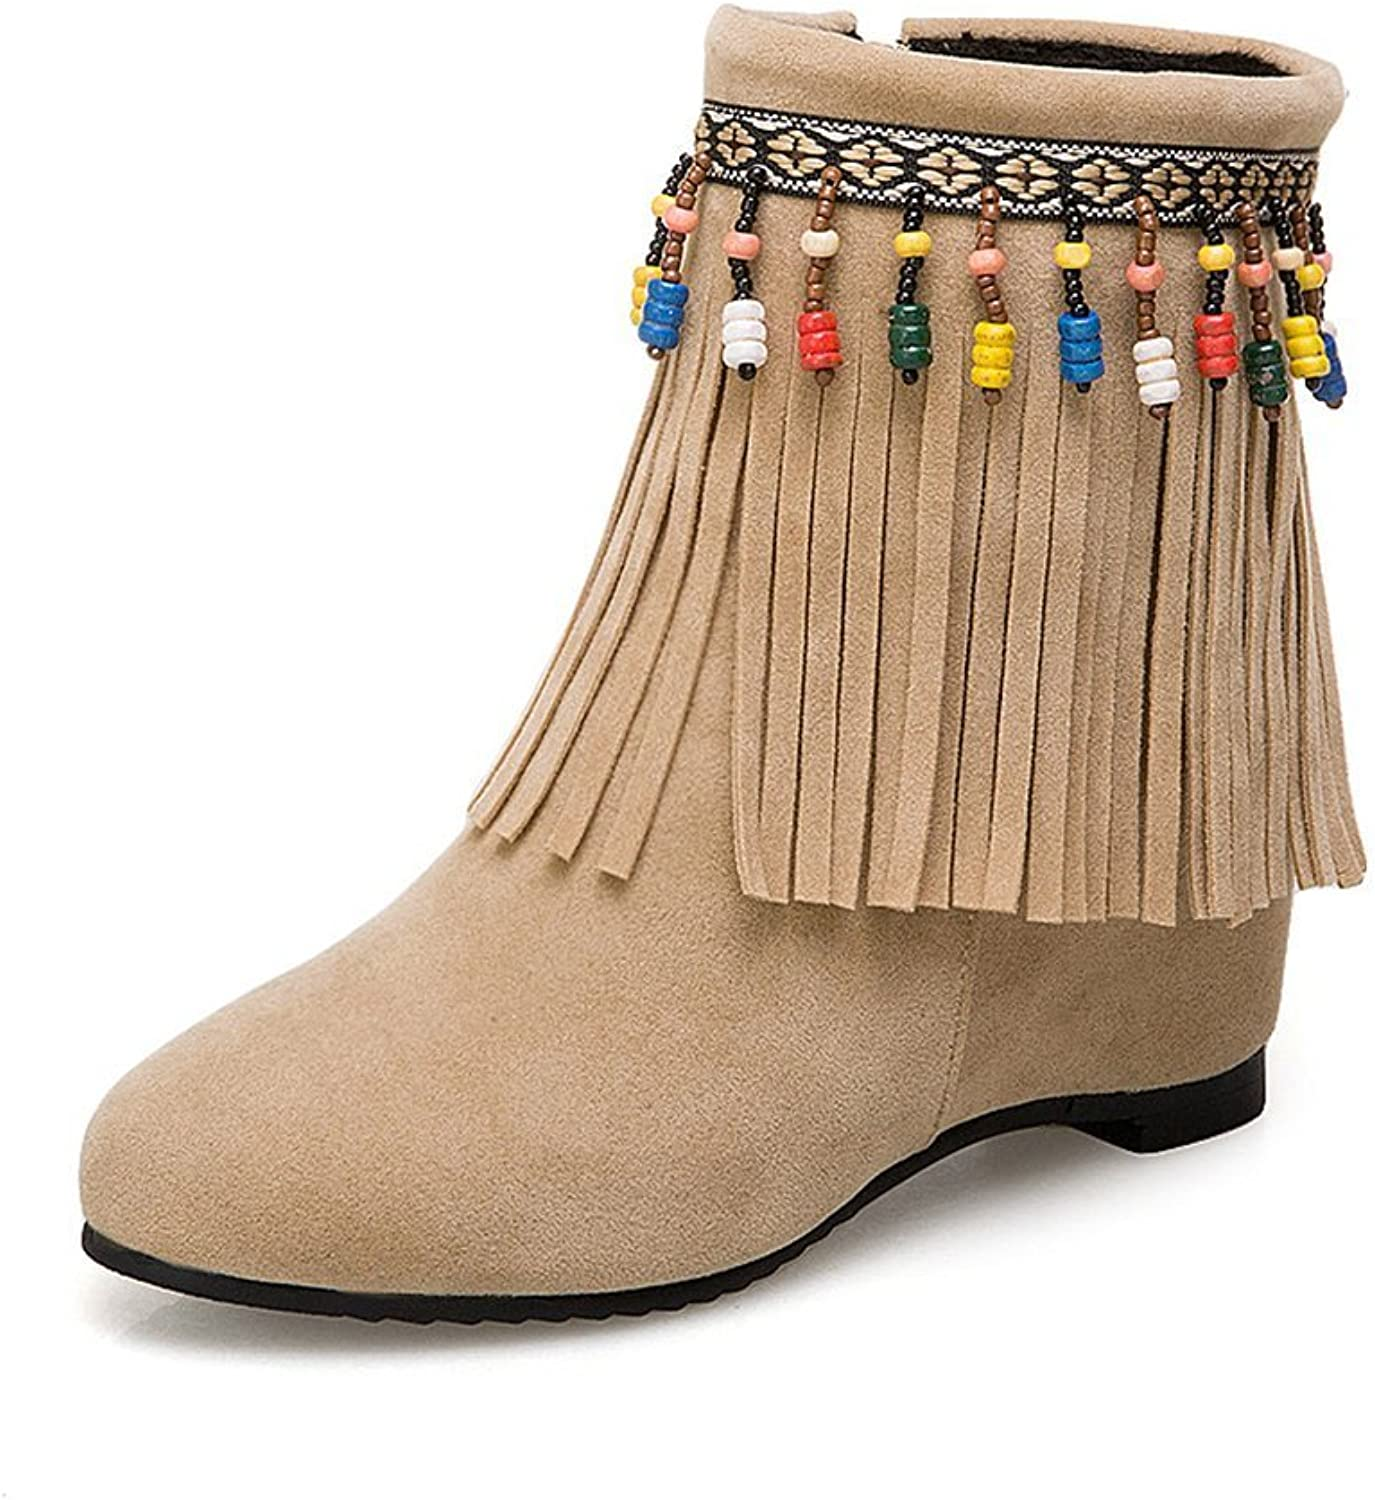 Women's Boots Beaded Tassel Boots Frosted Large Size Women's Boots Autumn Women's shoes Famous Women's Boots Casual Boots